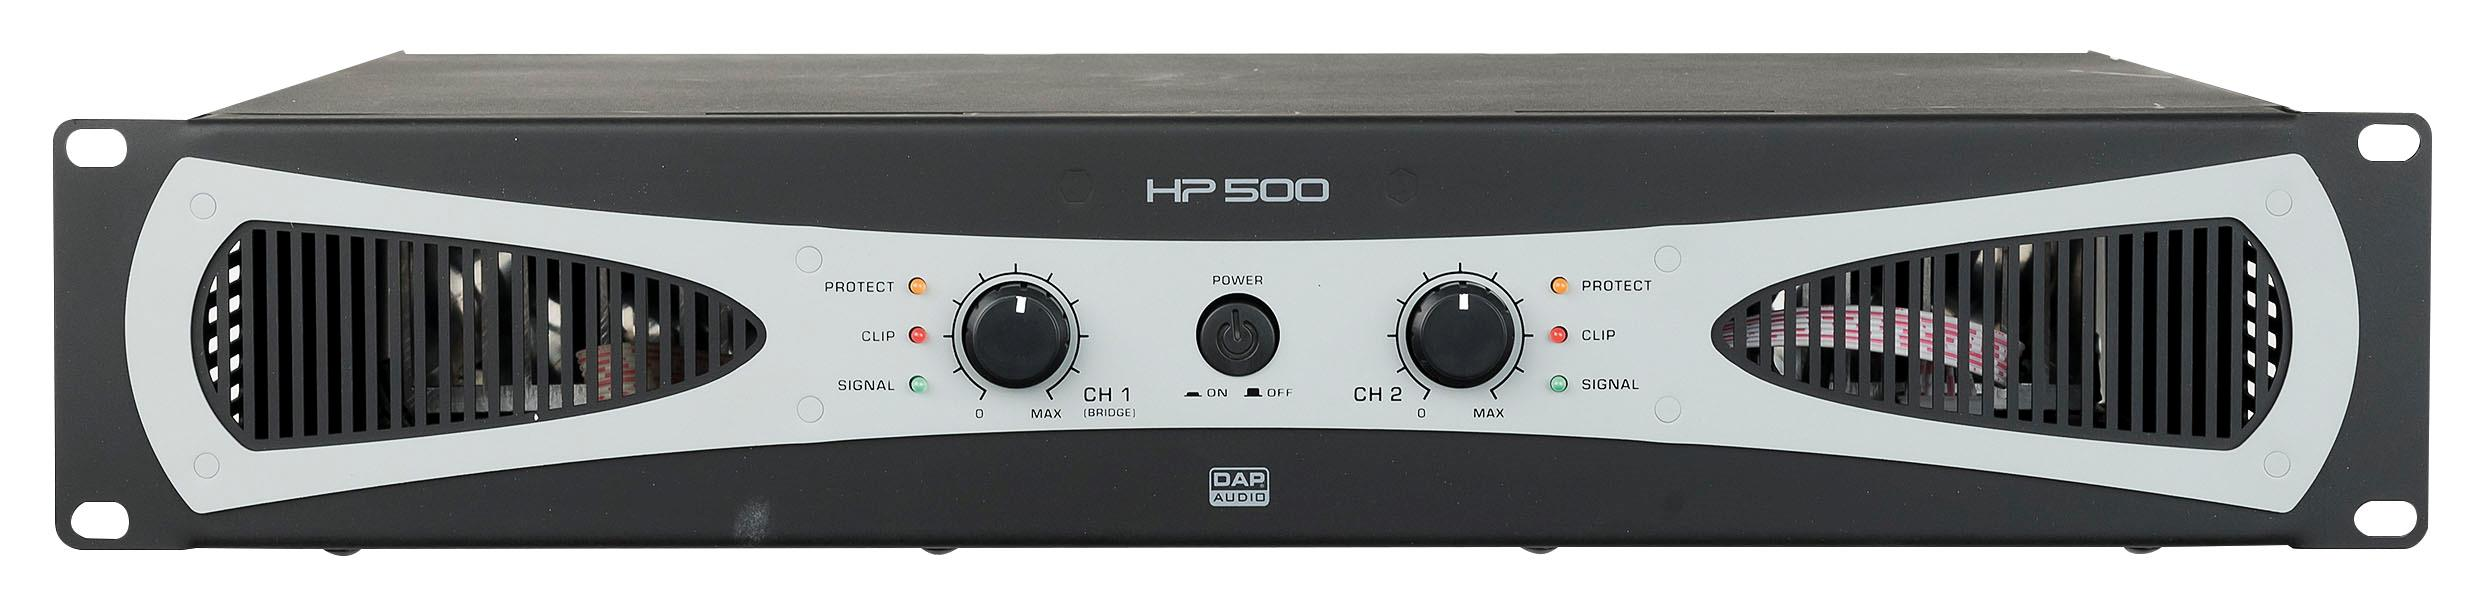 DAP HP- 500 2U 2X200w Amplifier